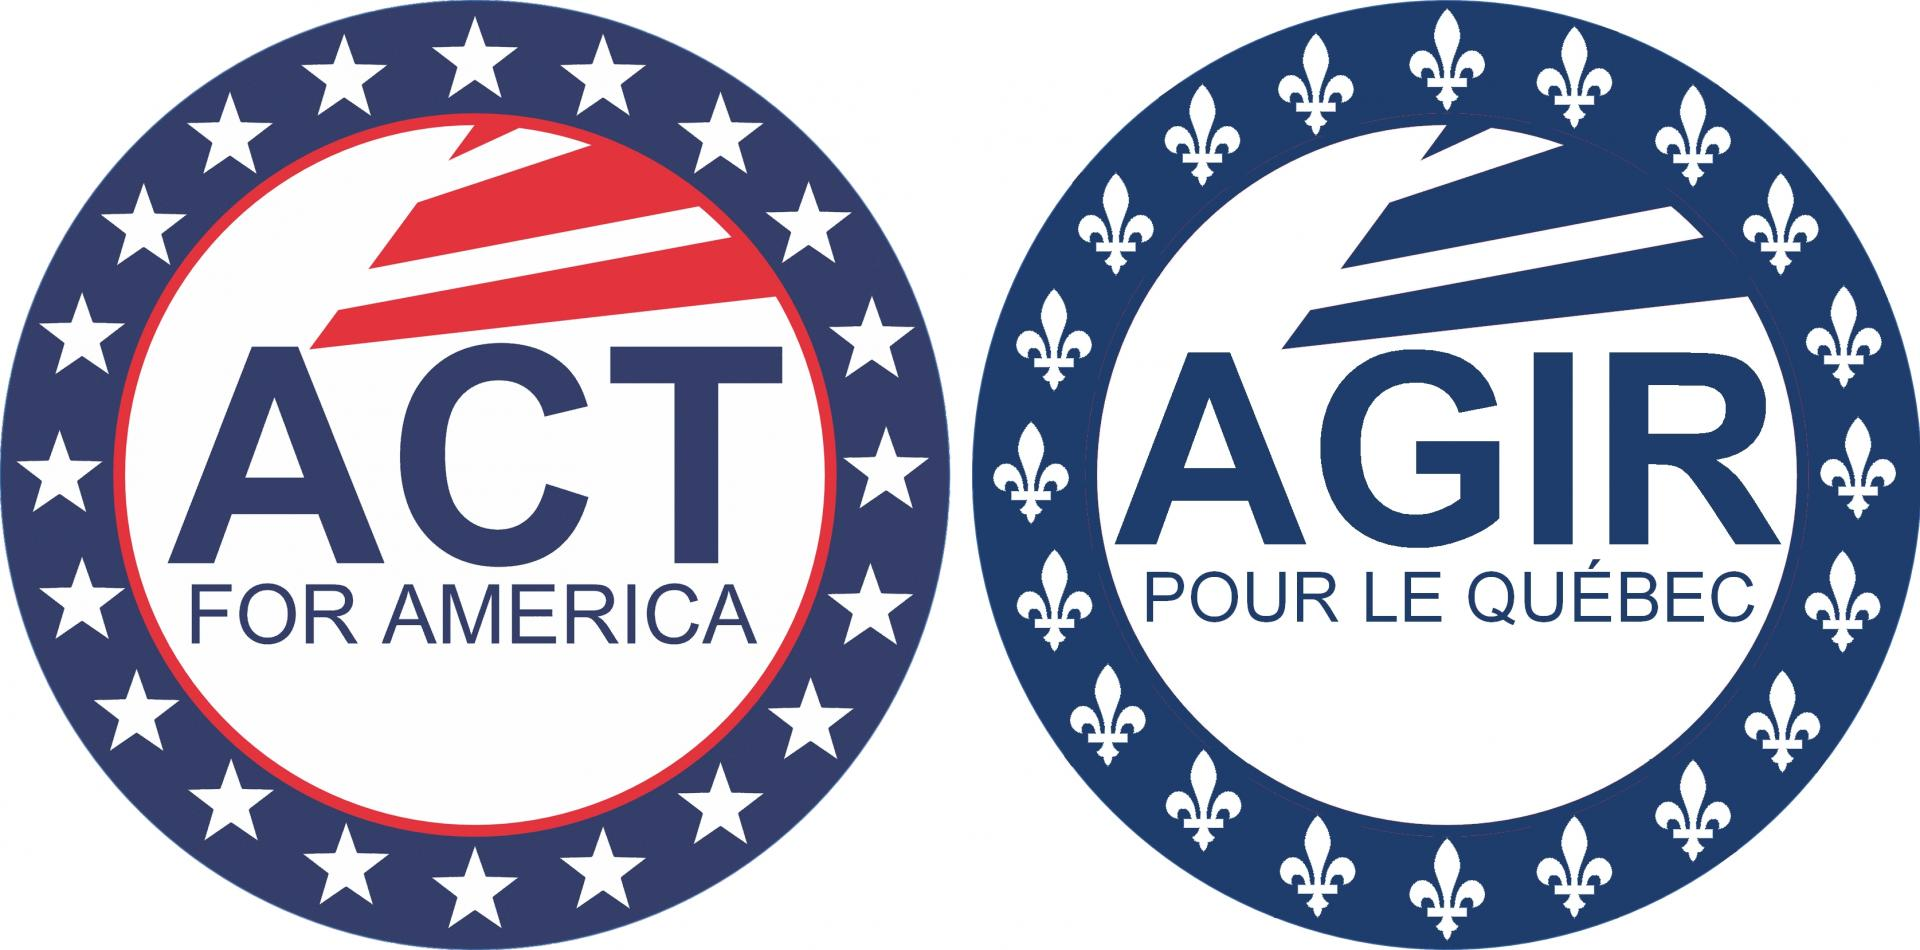 Act for quebec america